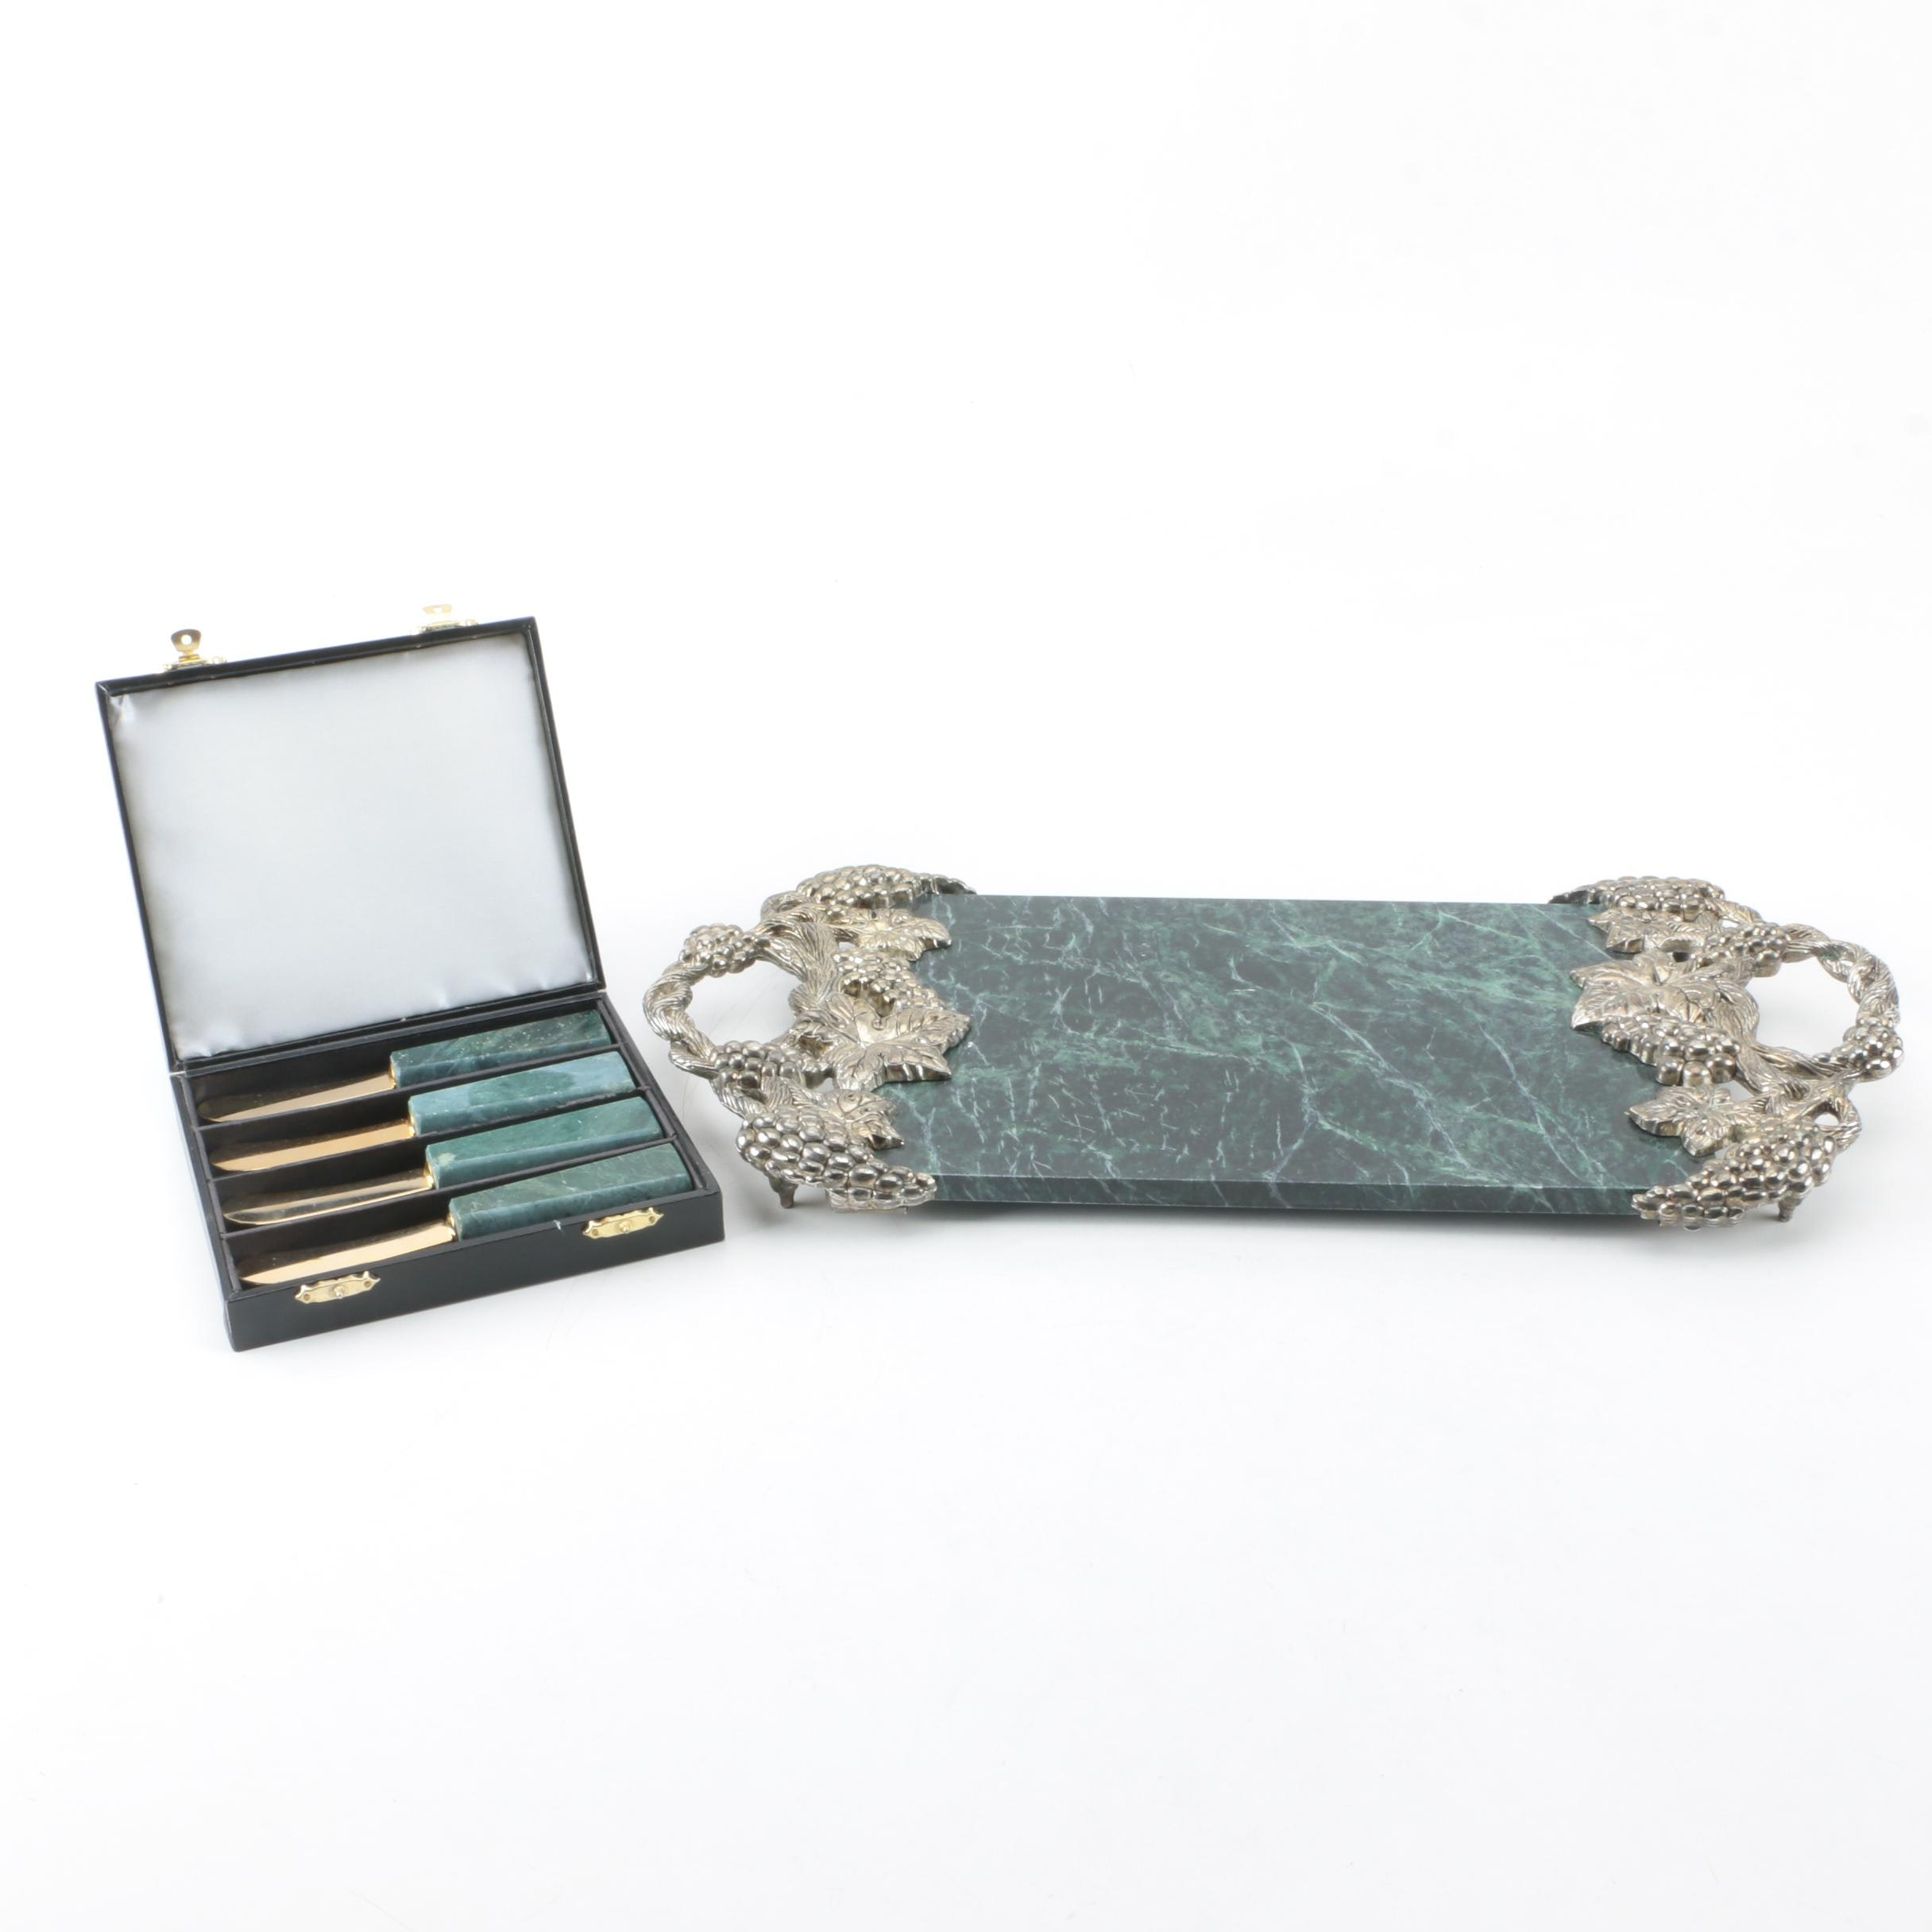 Godinger Green Marble and Silver Plate Cheese Tray with Marble Handle Knife Set